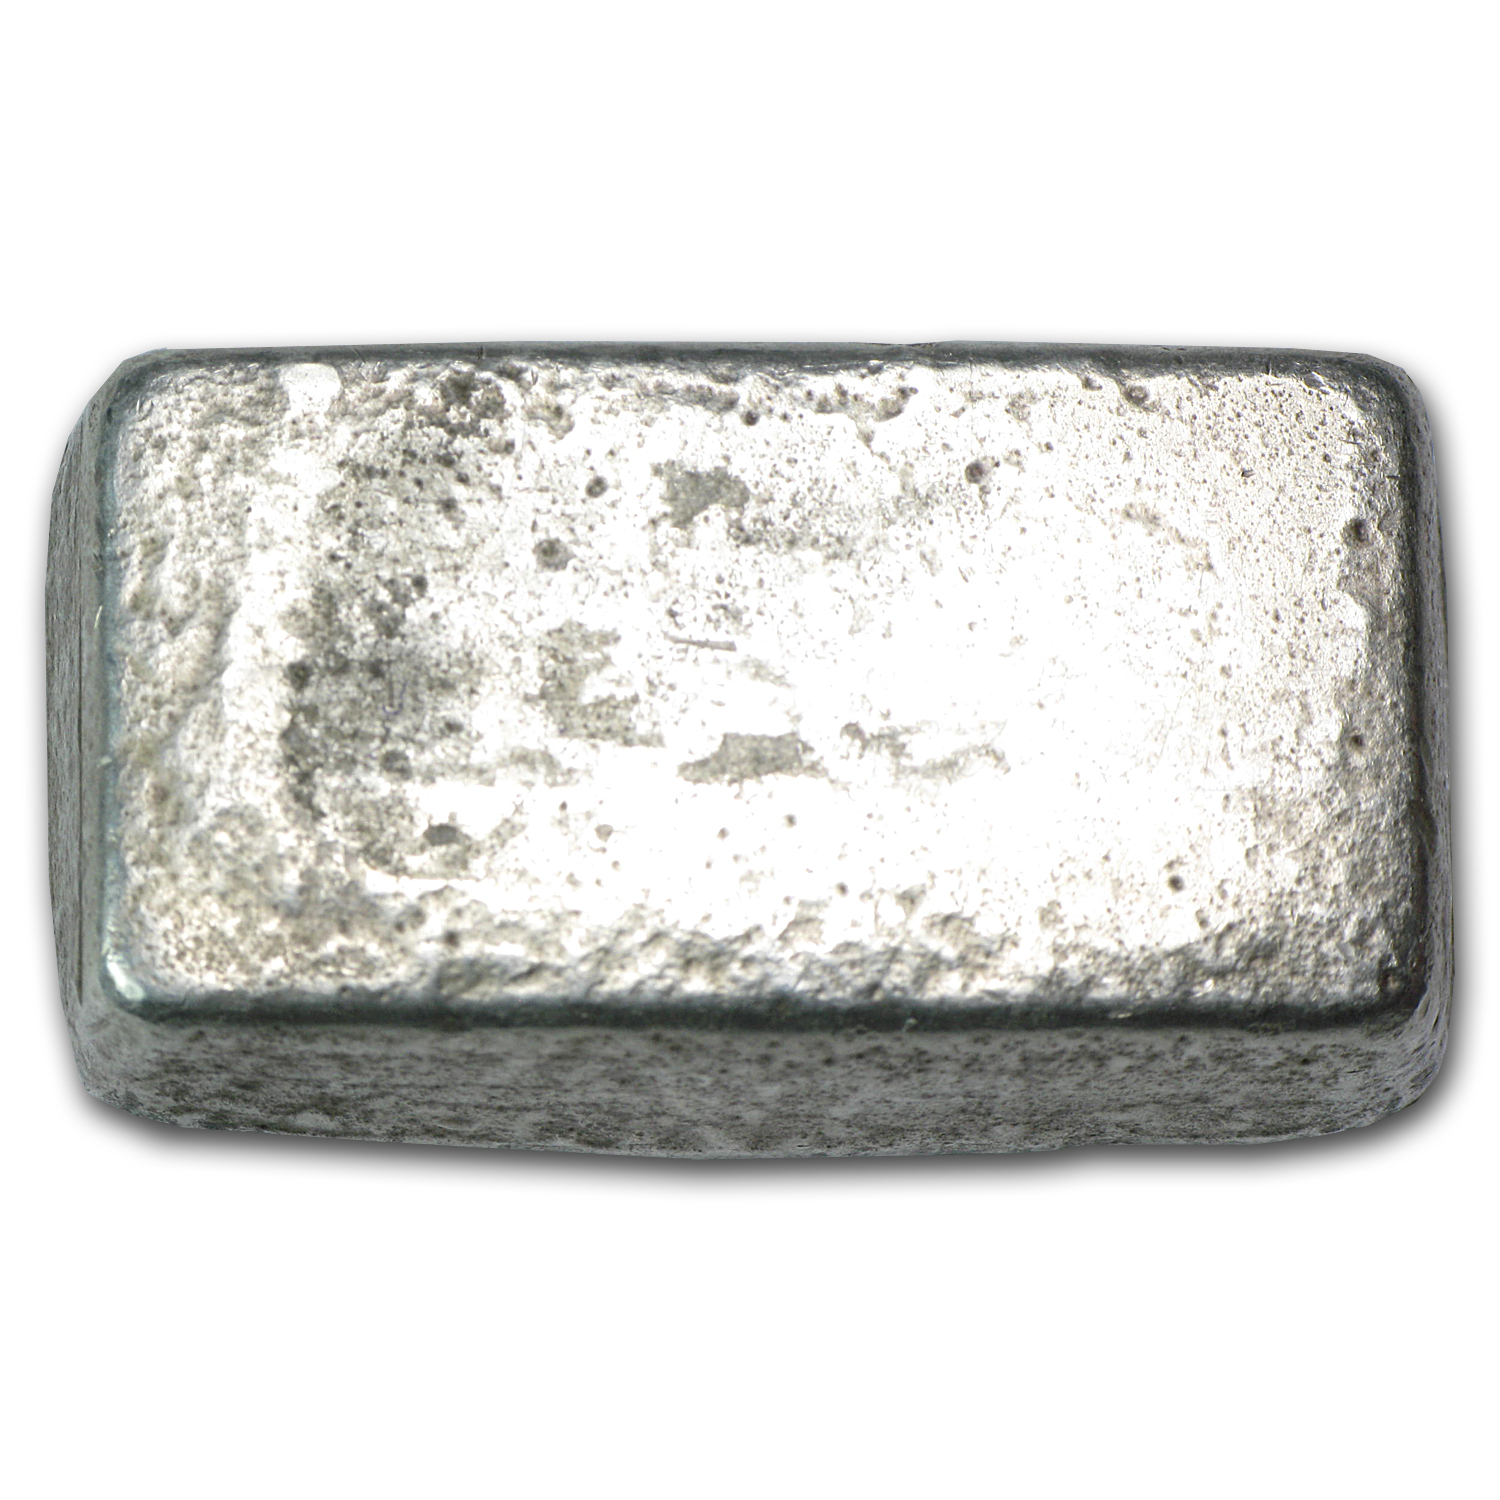 3 oz Silver Bar - Engelhard (Vintage/Poured)